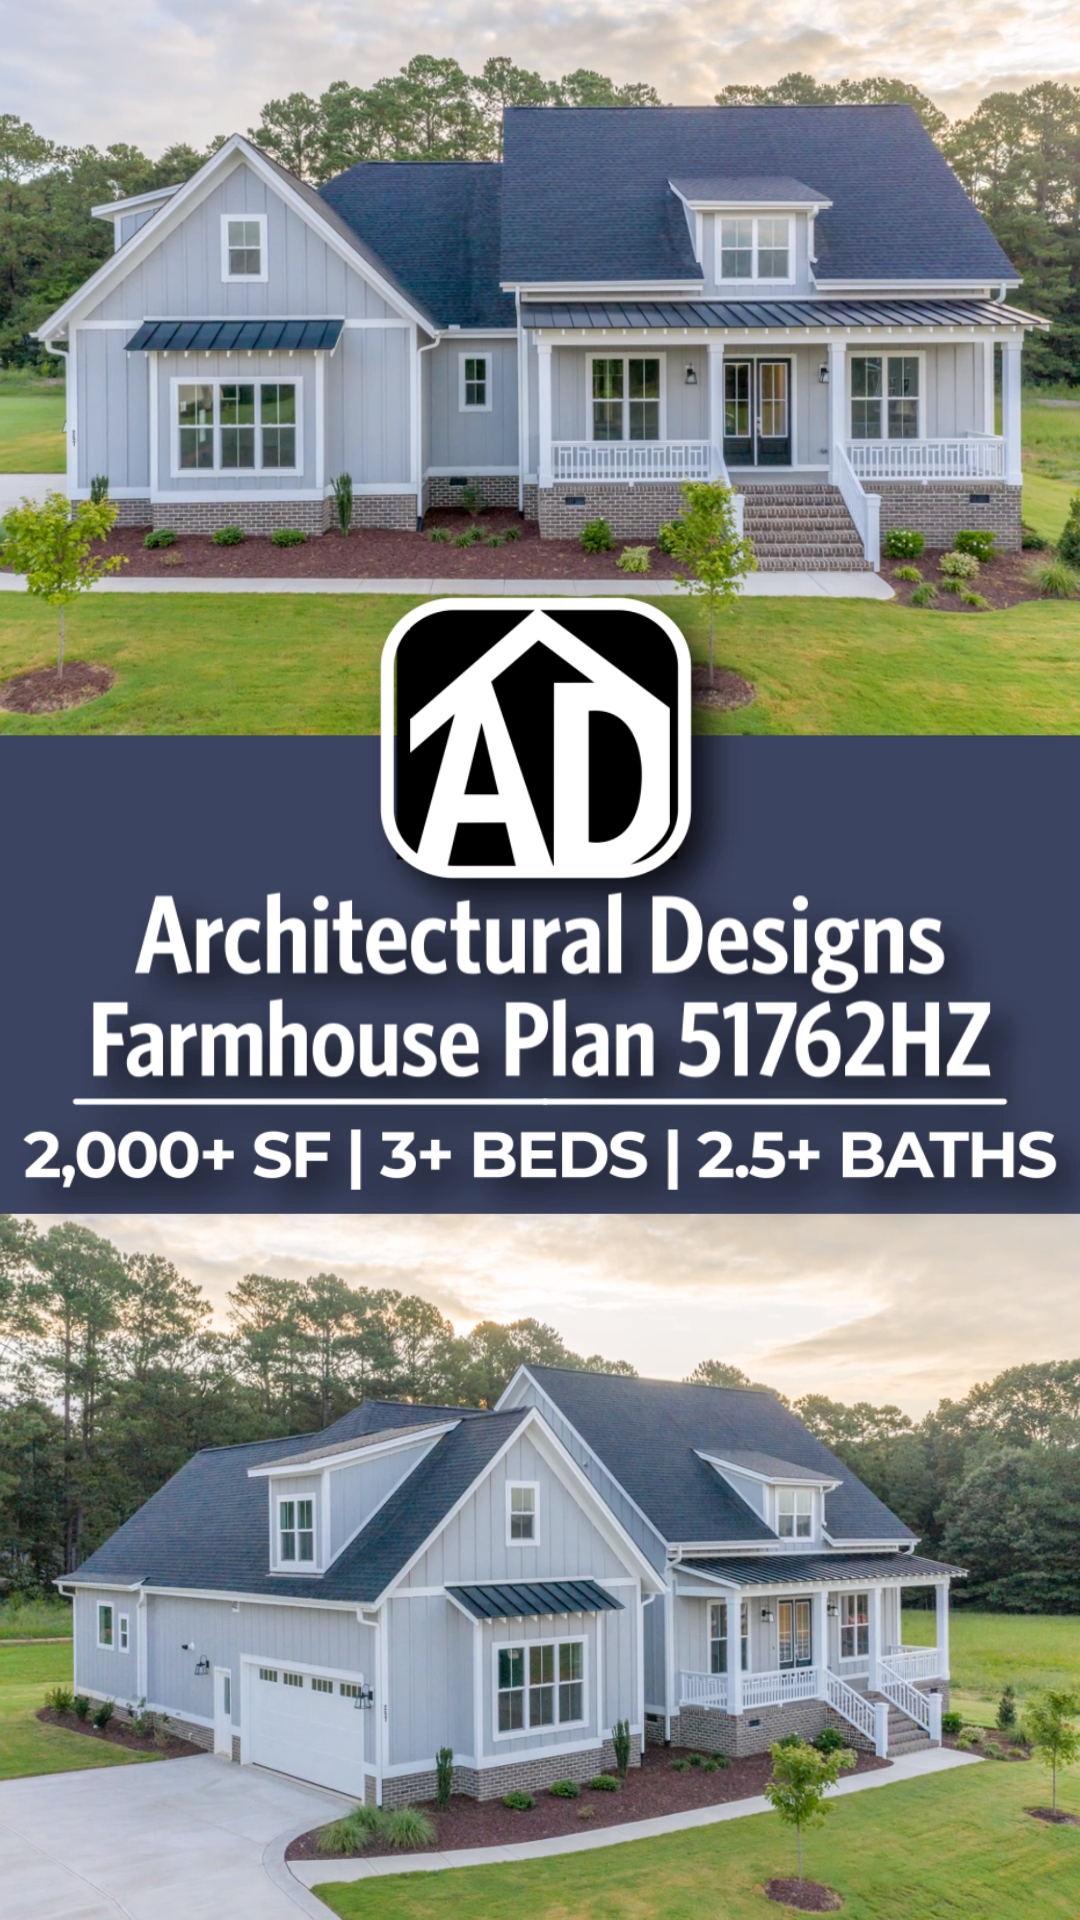 Modern Farmhouse Home Plan 51762HZ from Architectural Designs! This home design is 2,000+ SF, with 3+ Beds and 2.5+ Baths with an optionally finished Bonus Room over the Garage! Ready when you are! Where do YOU want to build? #adhouseplans #homeplans #houseplans #floorplans #modernfarmhouse #farmhouse #bluehouse #homedesign #homedesigners #floorplan #homedesigns #farmhouse #farmhousestyle #51762HZ #architecturaldesigns #modernfarmhouseexterior